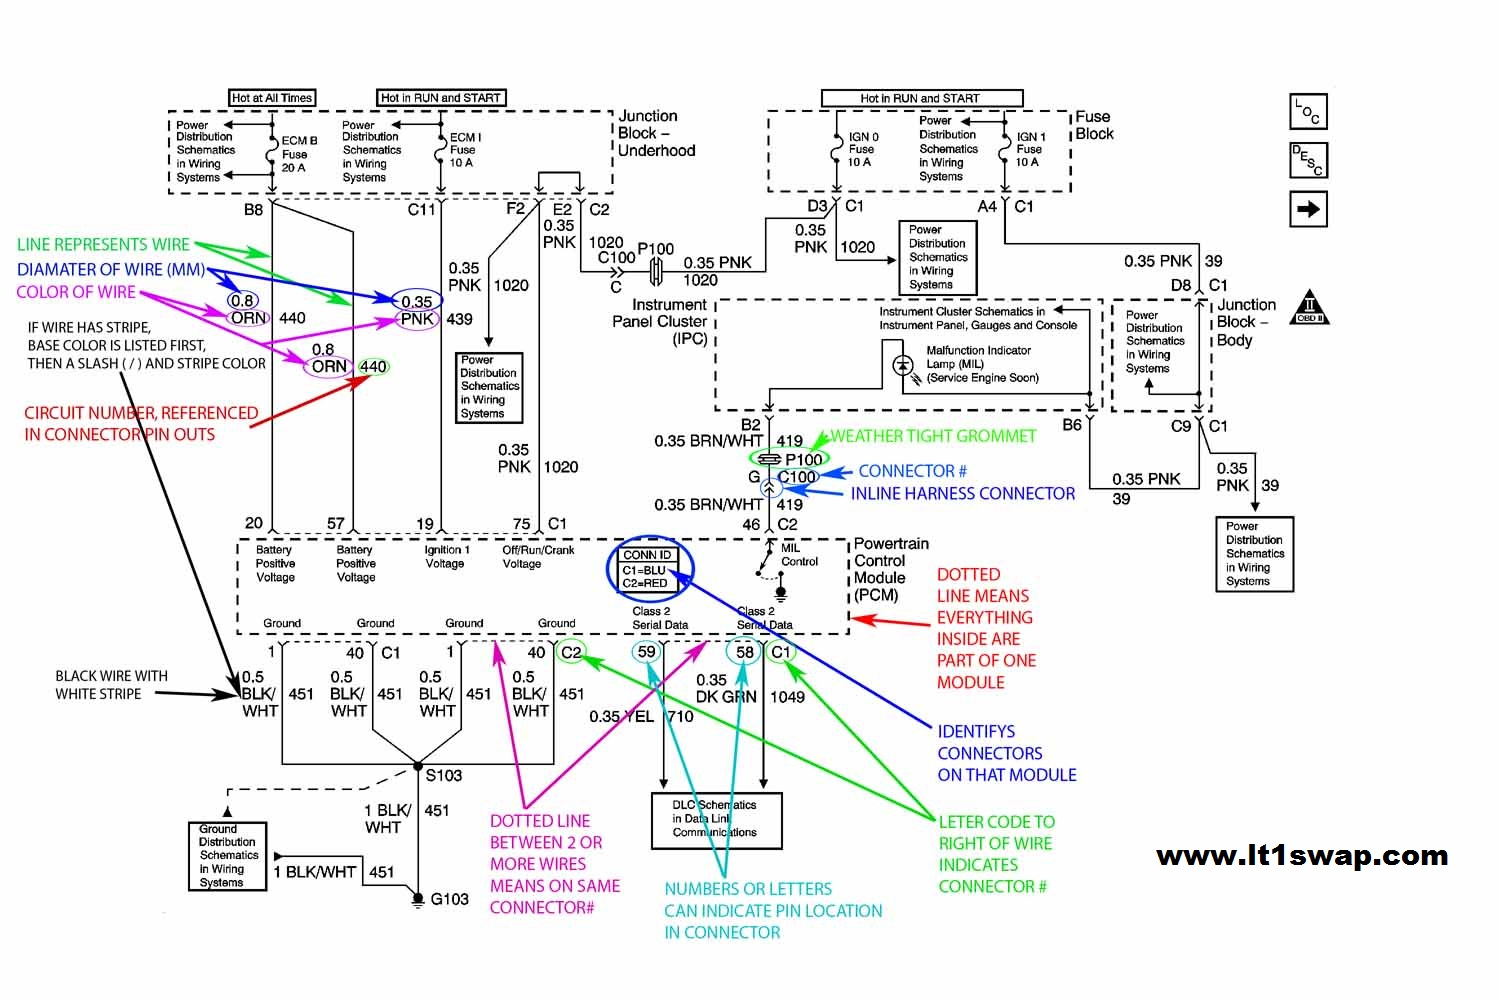 2009 Scion Xb Radio Wiring Diagram - Wiring Diagram